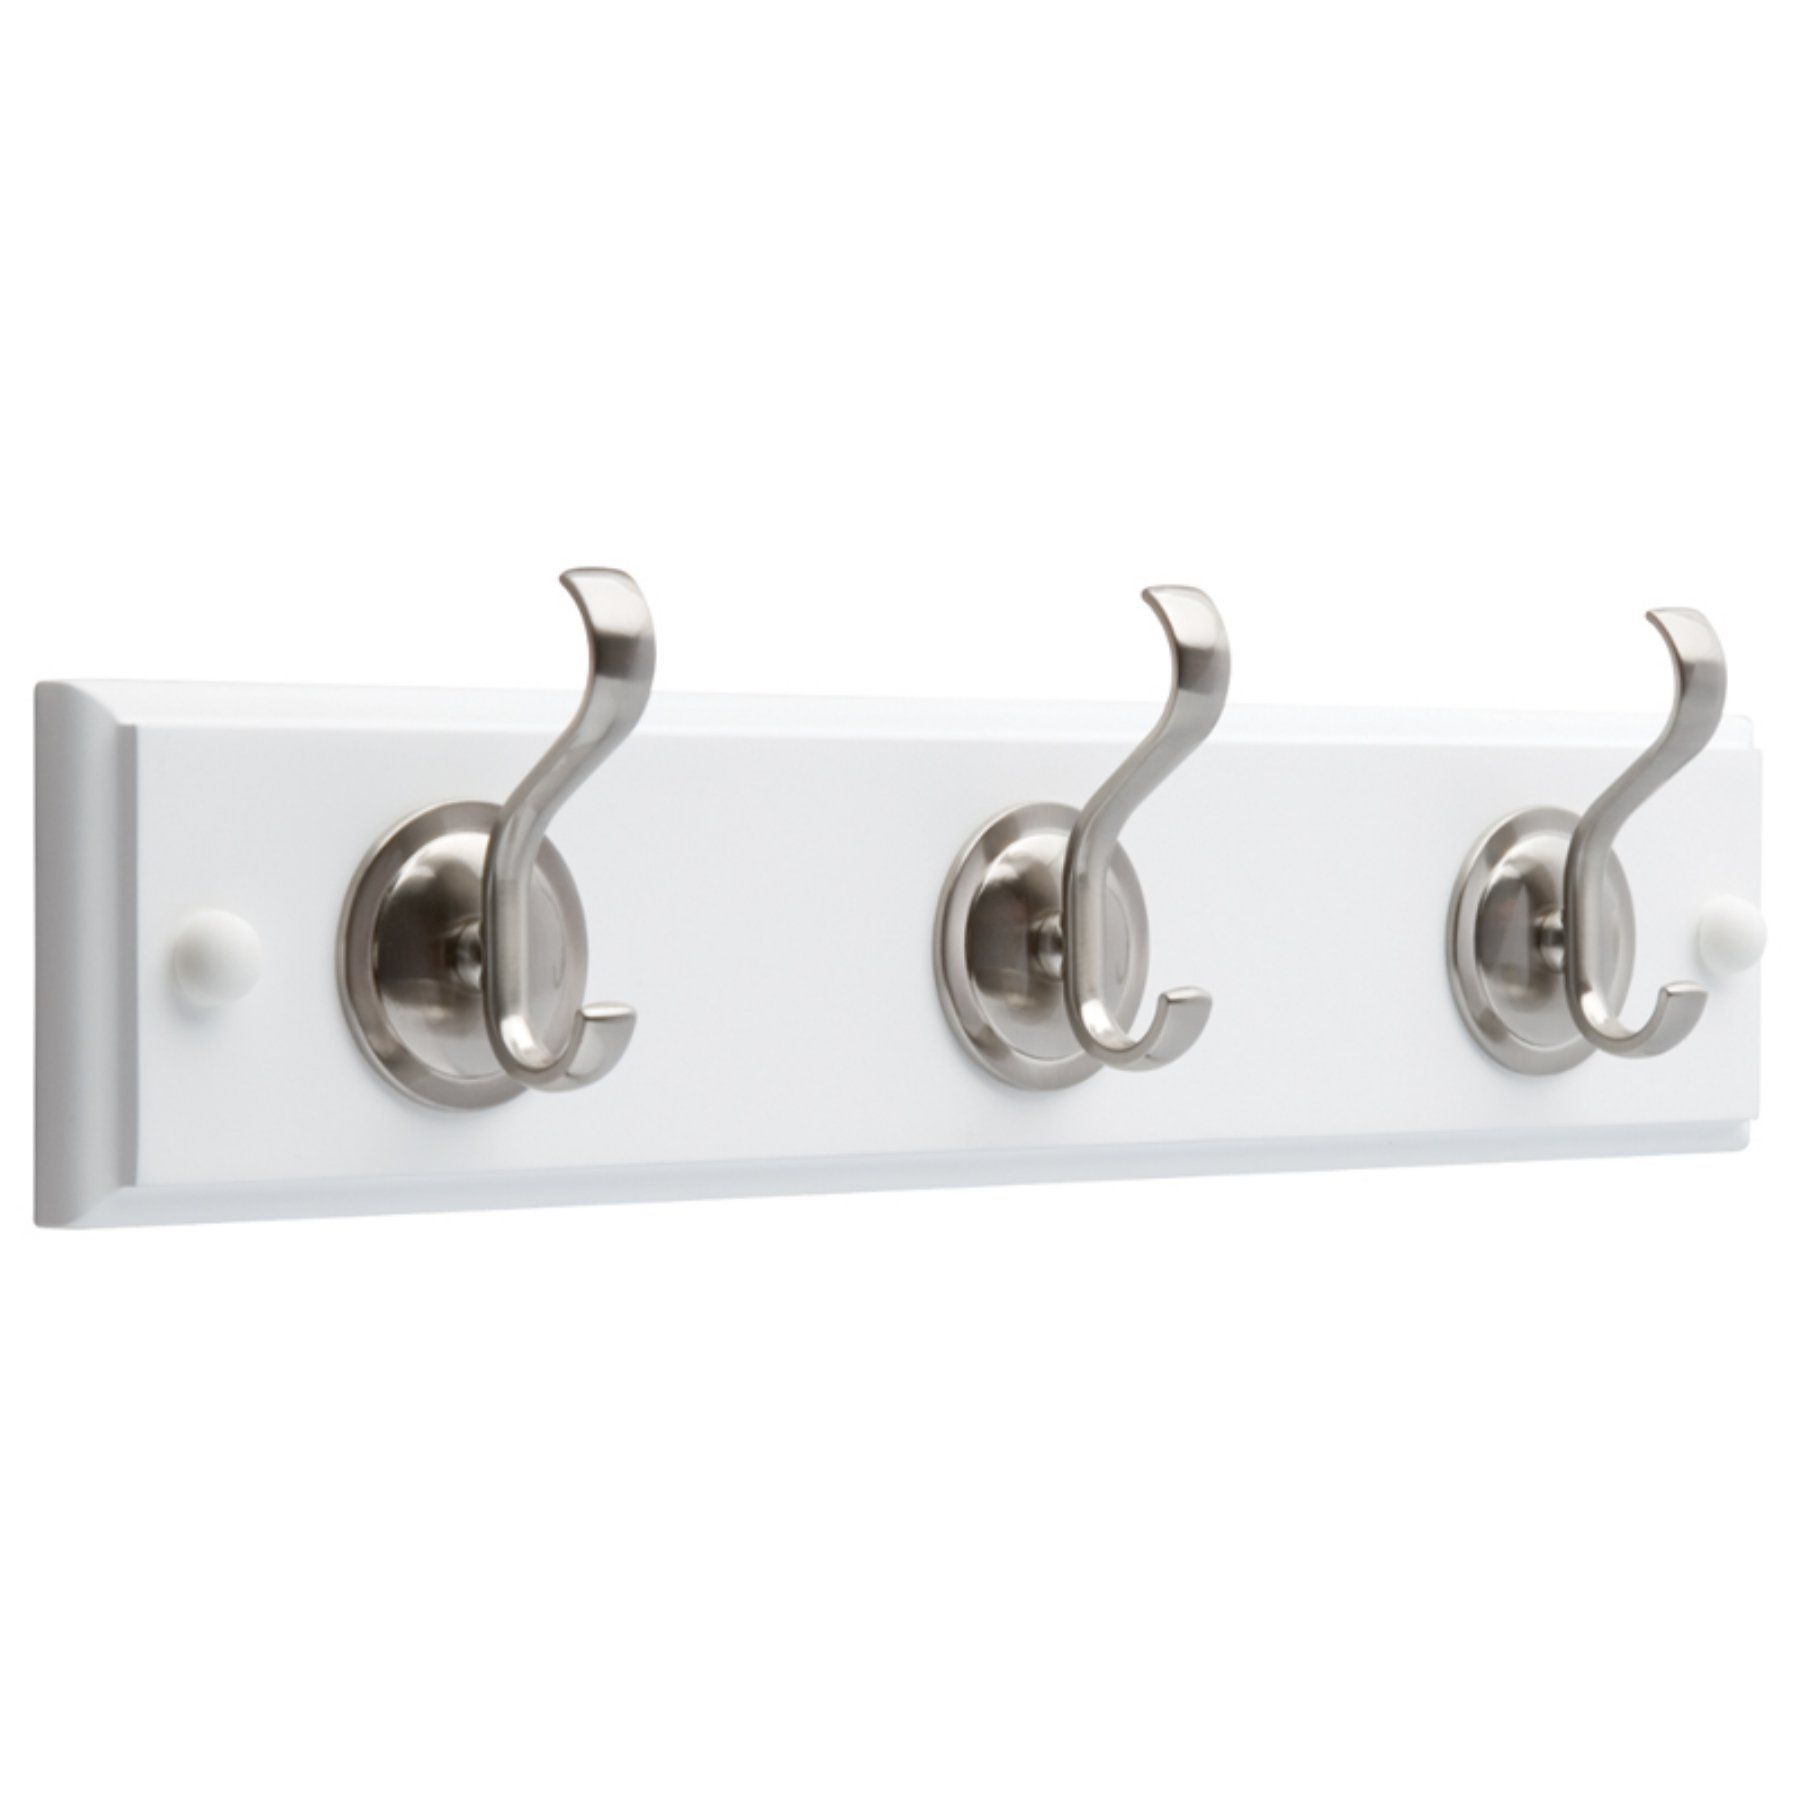 f95f146157c Liberty Hardware 14 in. Hook Rack with 3-Coat and Hat Hooks - Flat White   Satin  Nickel - 133074